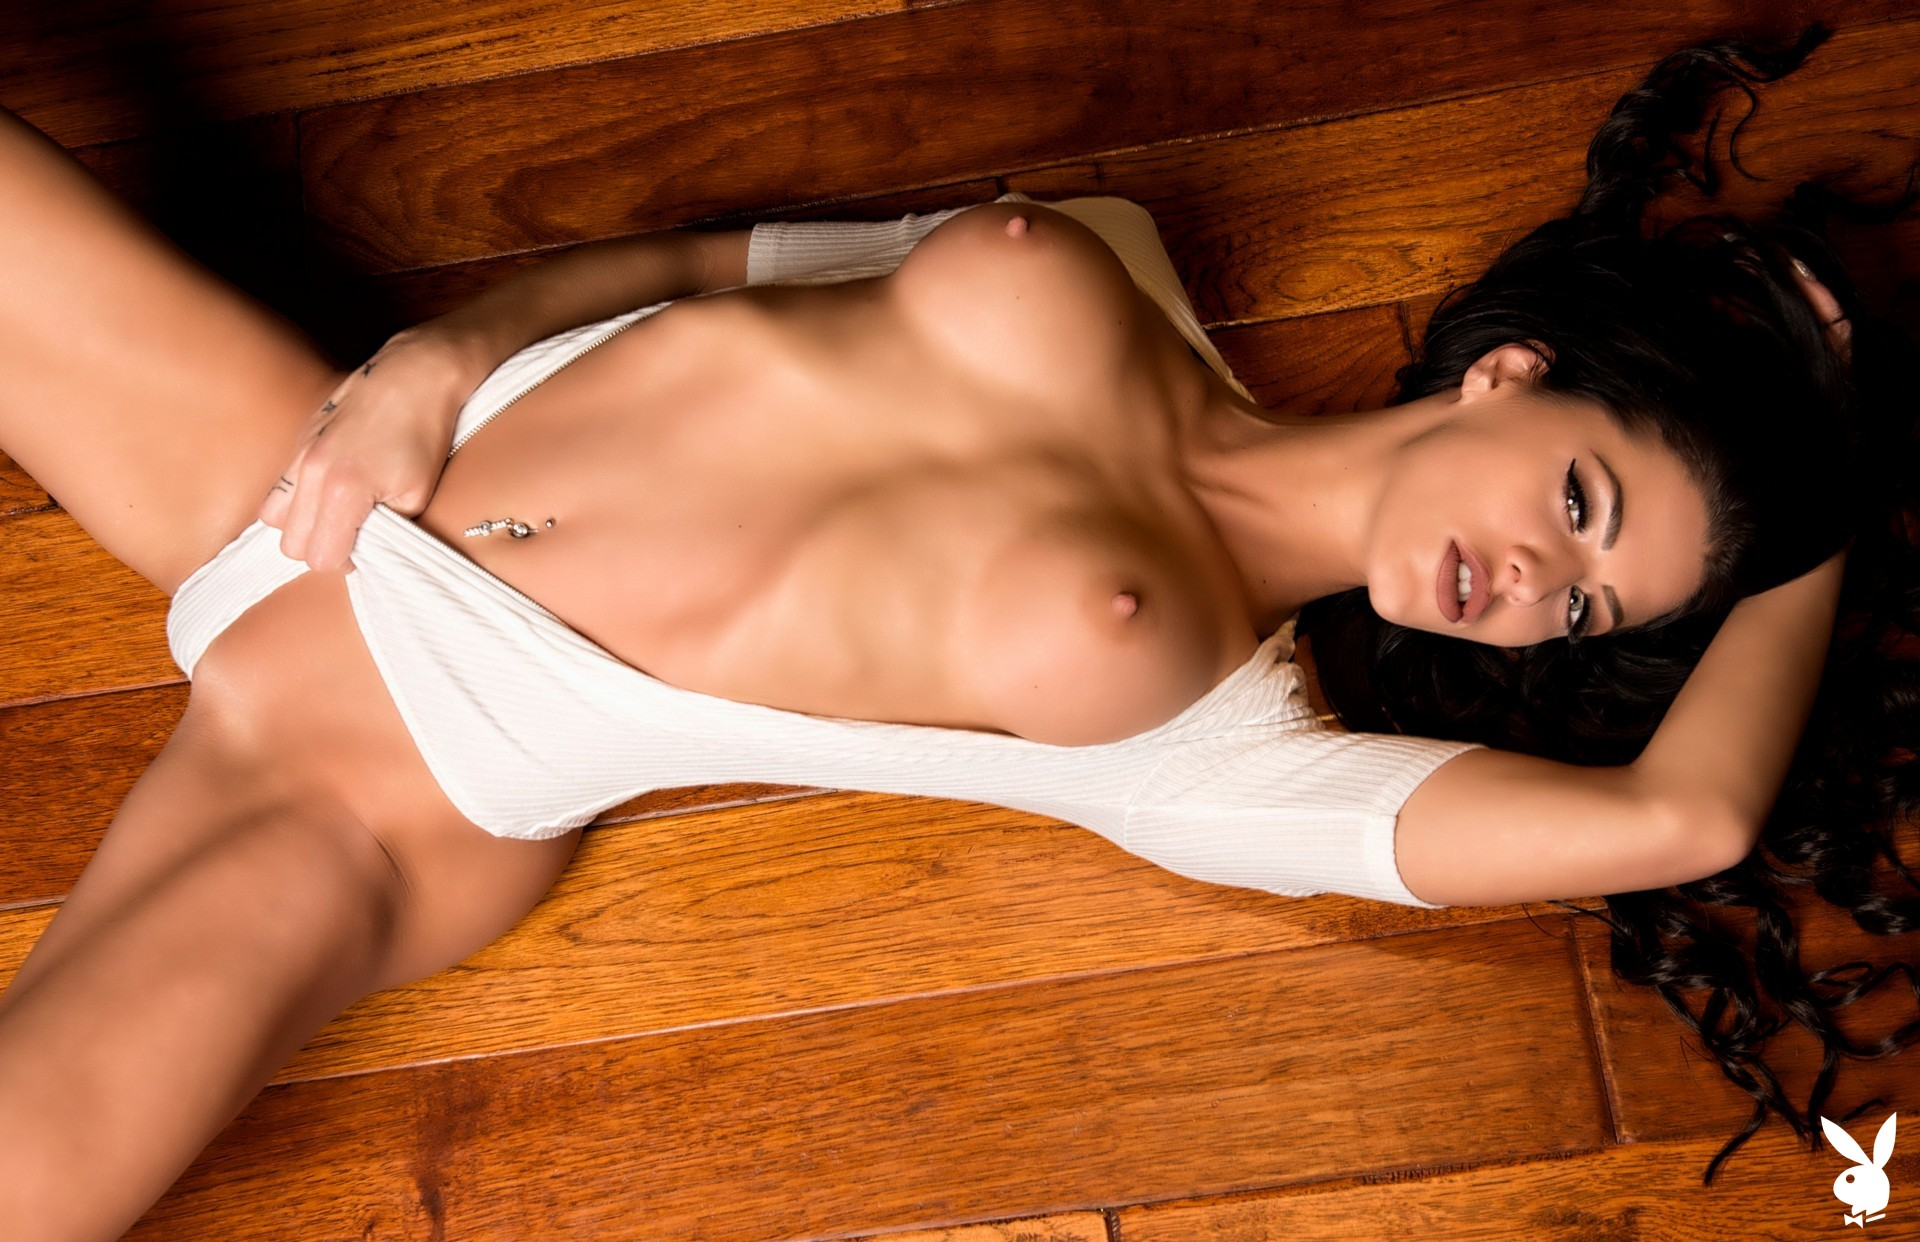 Bree Leigh In Playboy Czech Republic Playboy Plus (4)